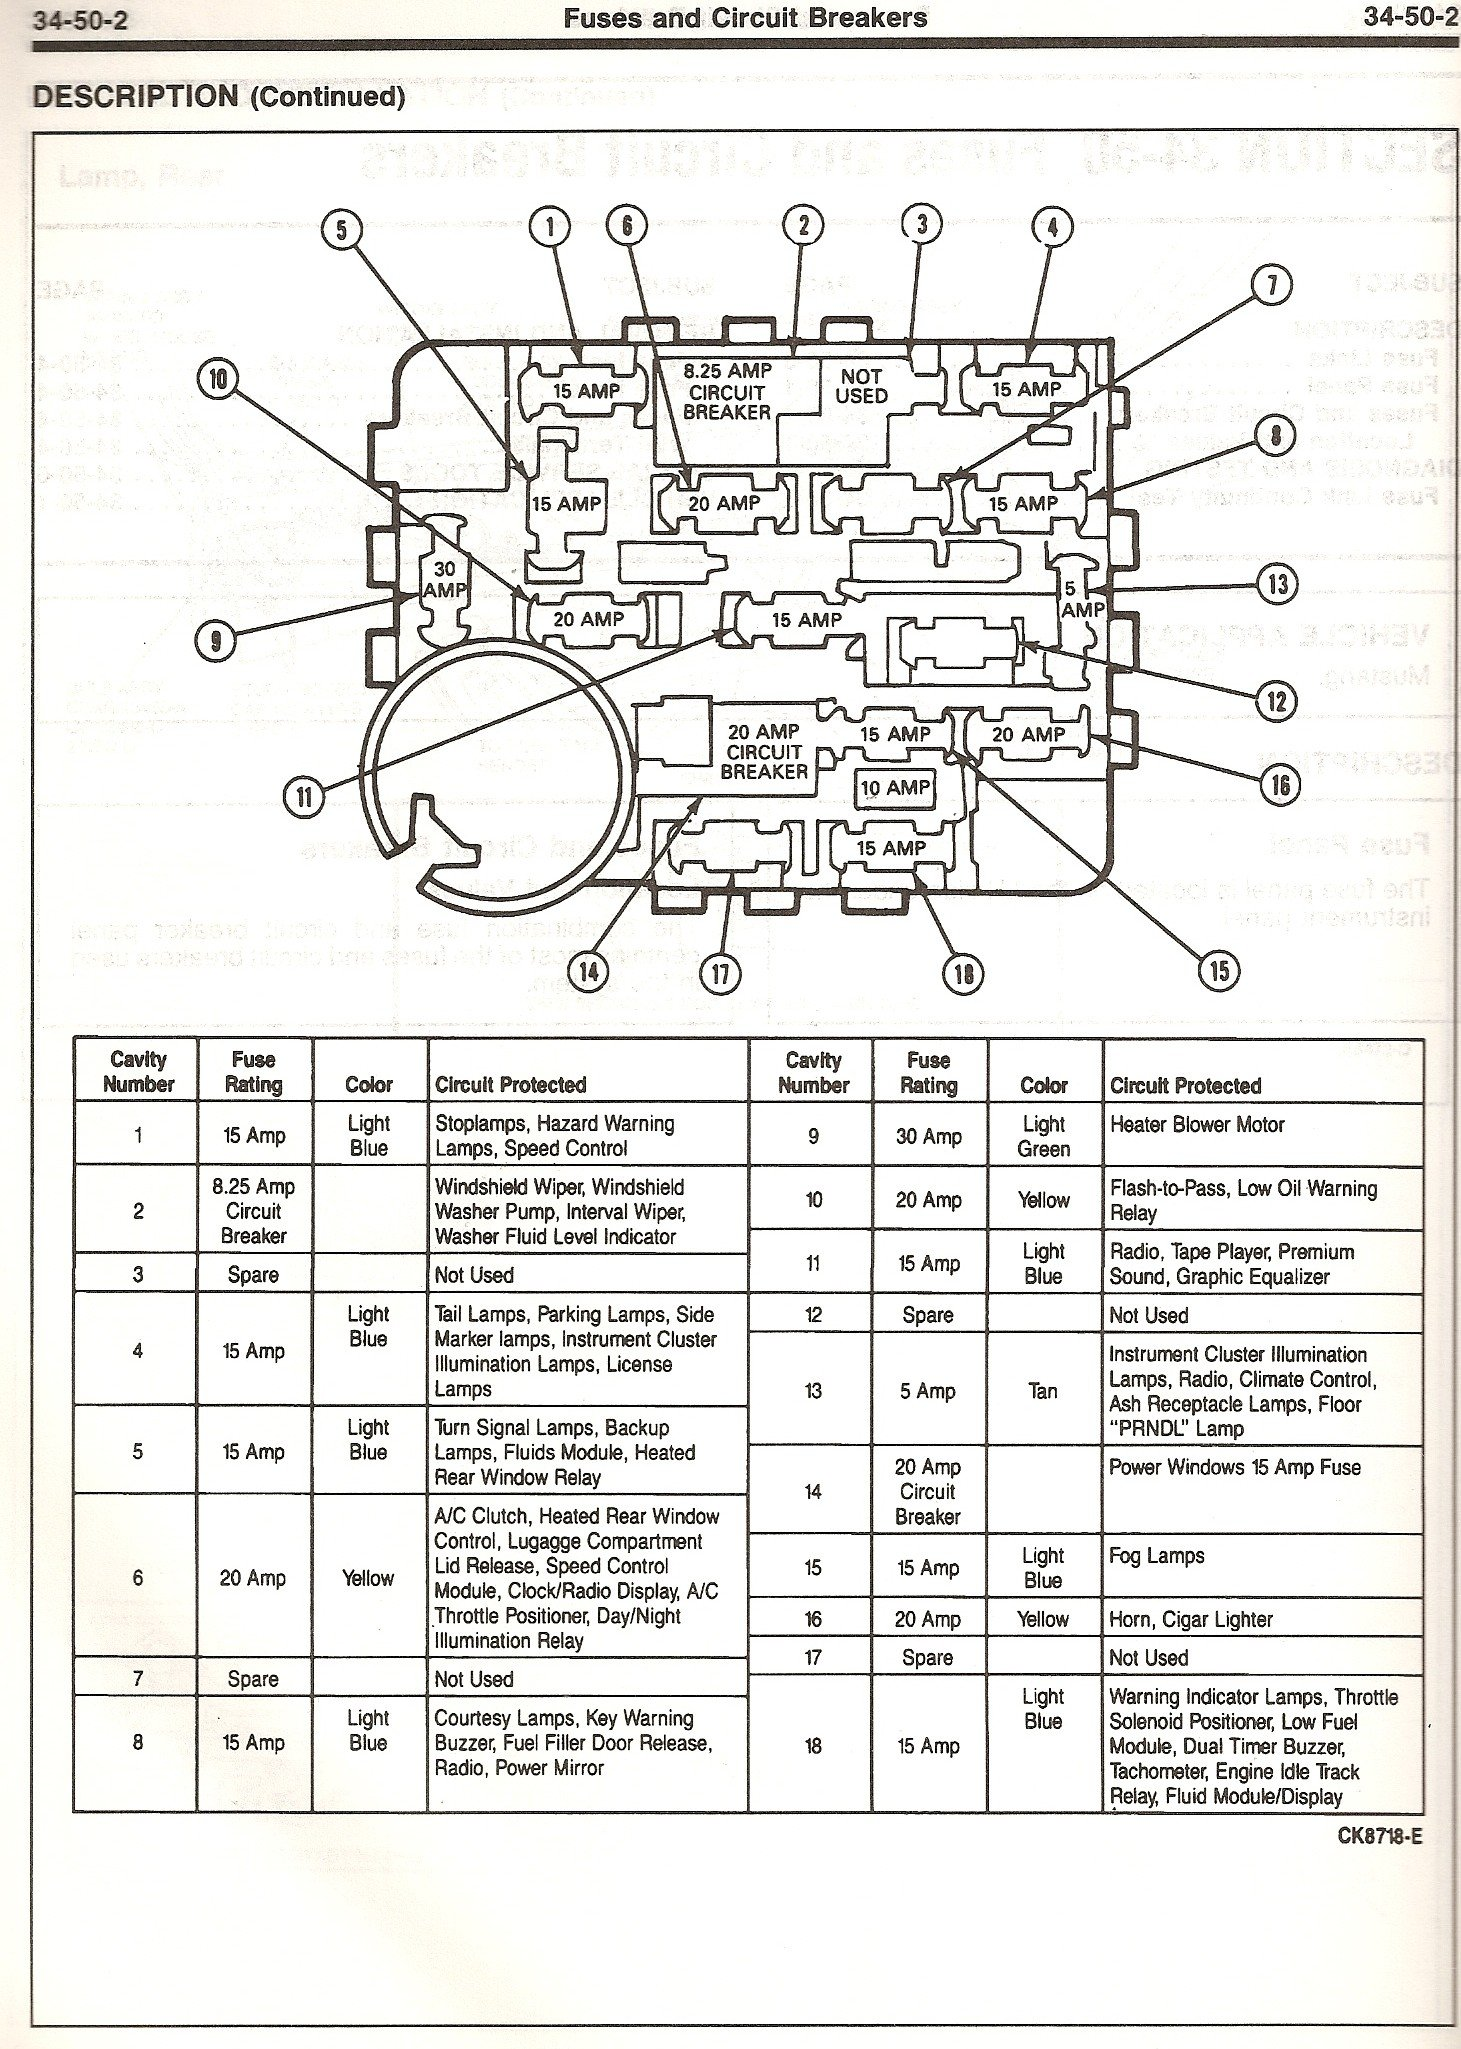 1990 Ford Fuse Box Wiring Diagram Schematics Toyota 1991 Pickup 2 3 Mustang Missing Panel Forum Thunderbird